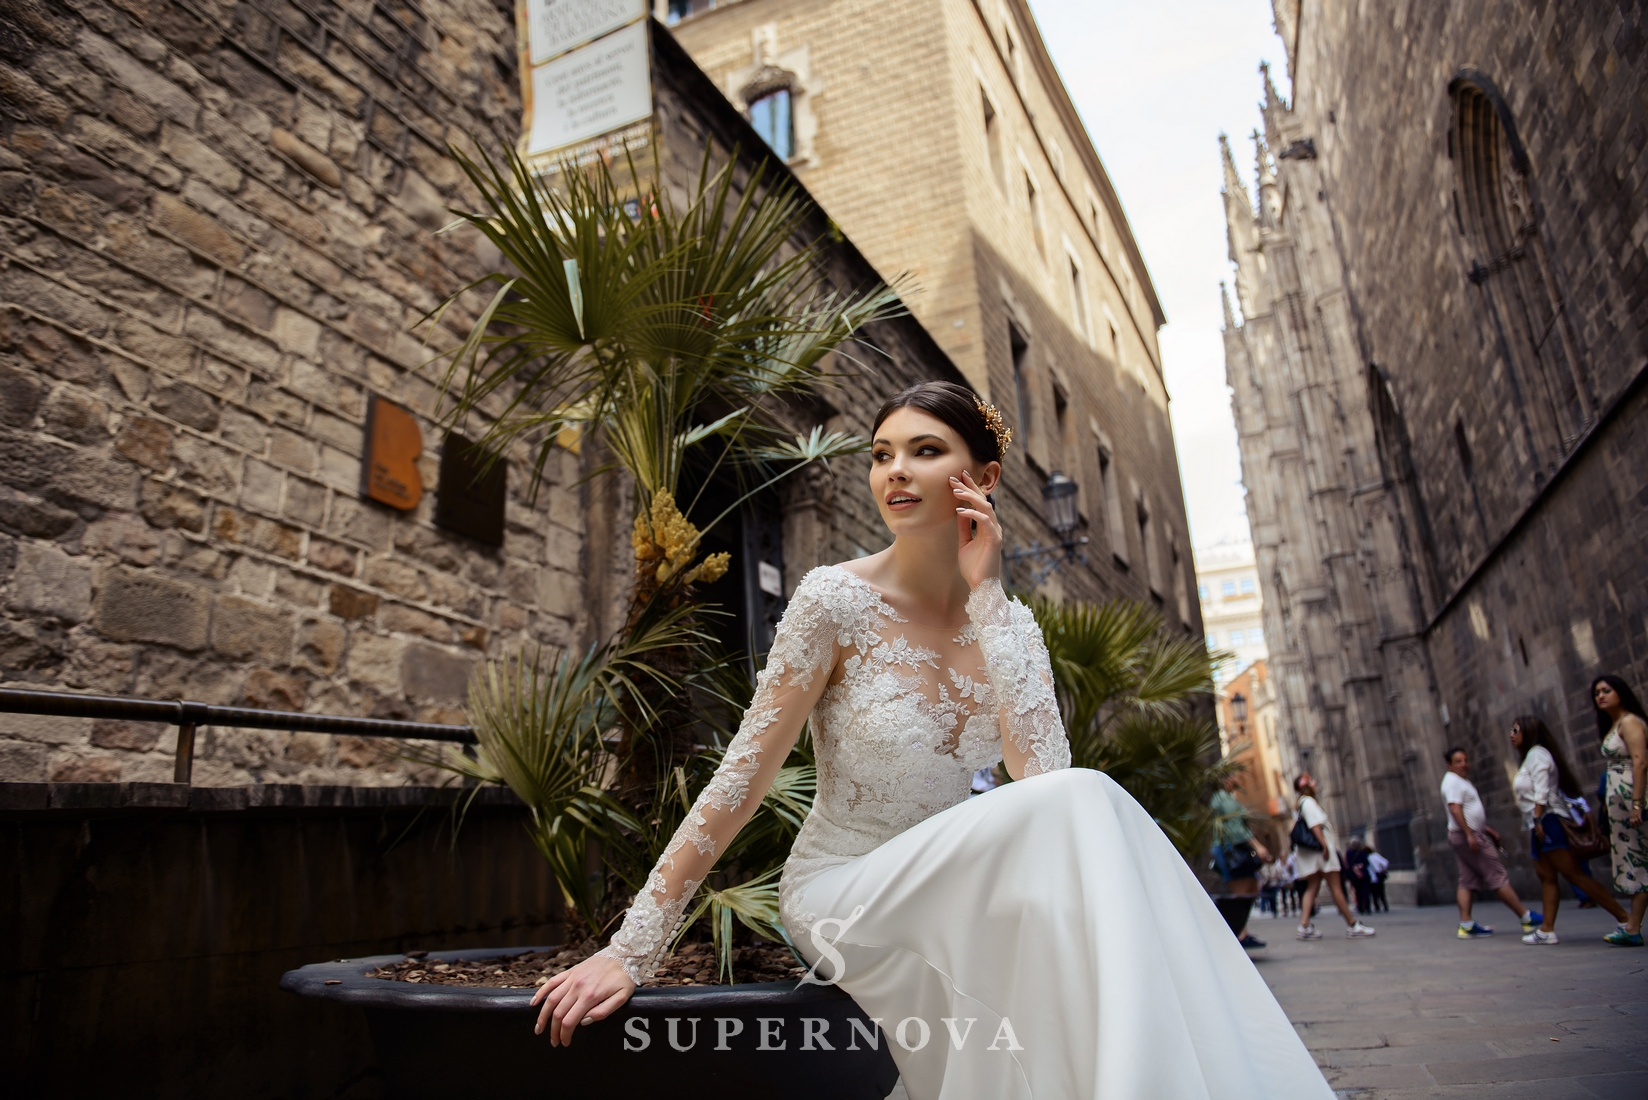 Wedding dress with appliqués and a soft train skirt from Supernova wholesale-1